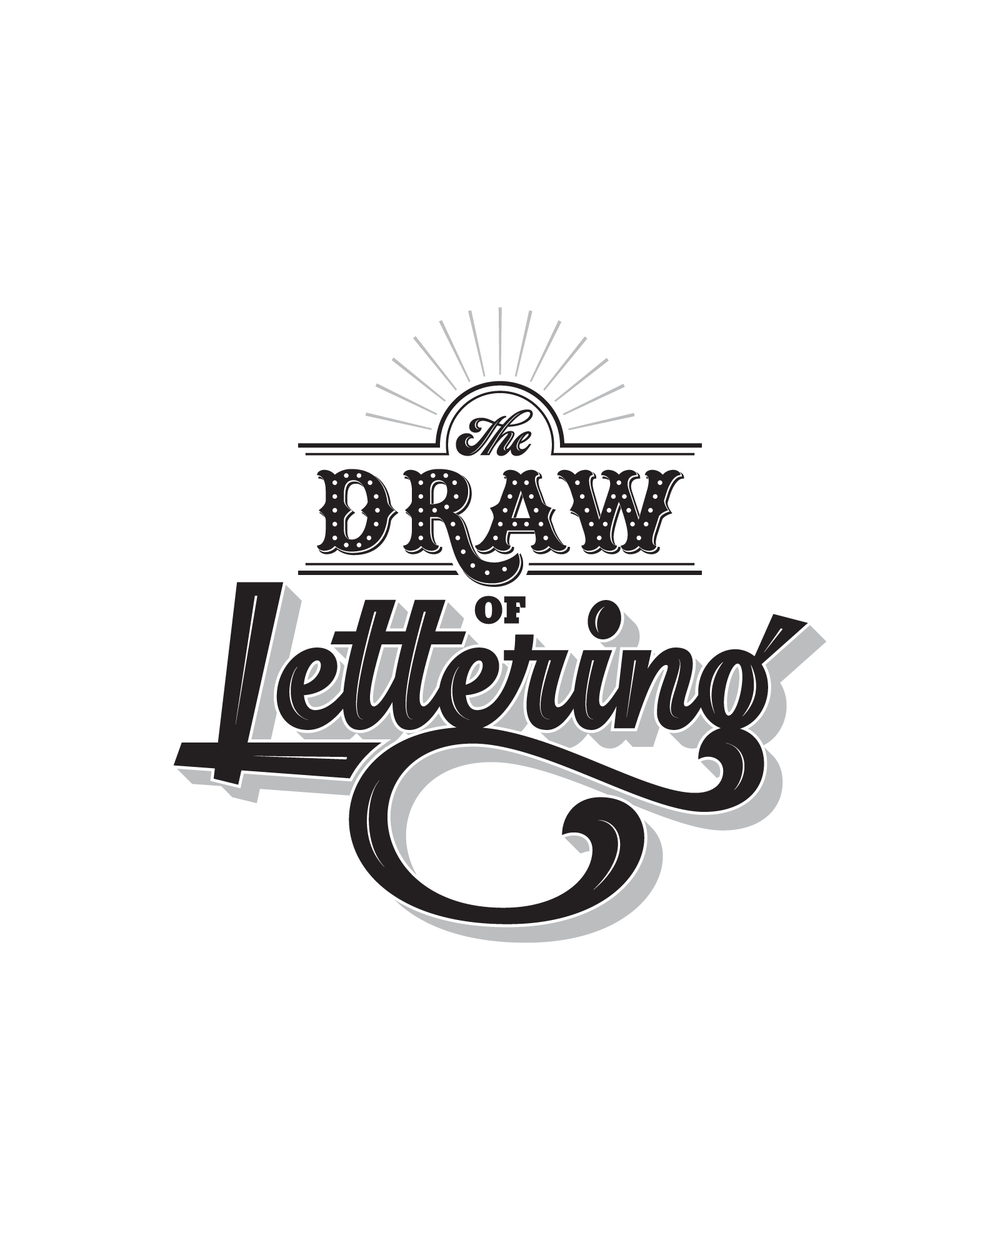 Mural, Lettering & Exhibition Design The DrawOf Lettering View Project